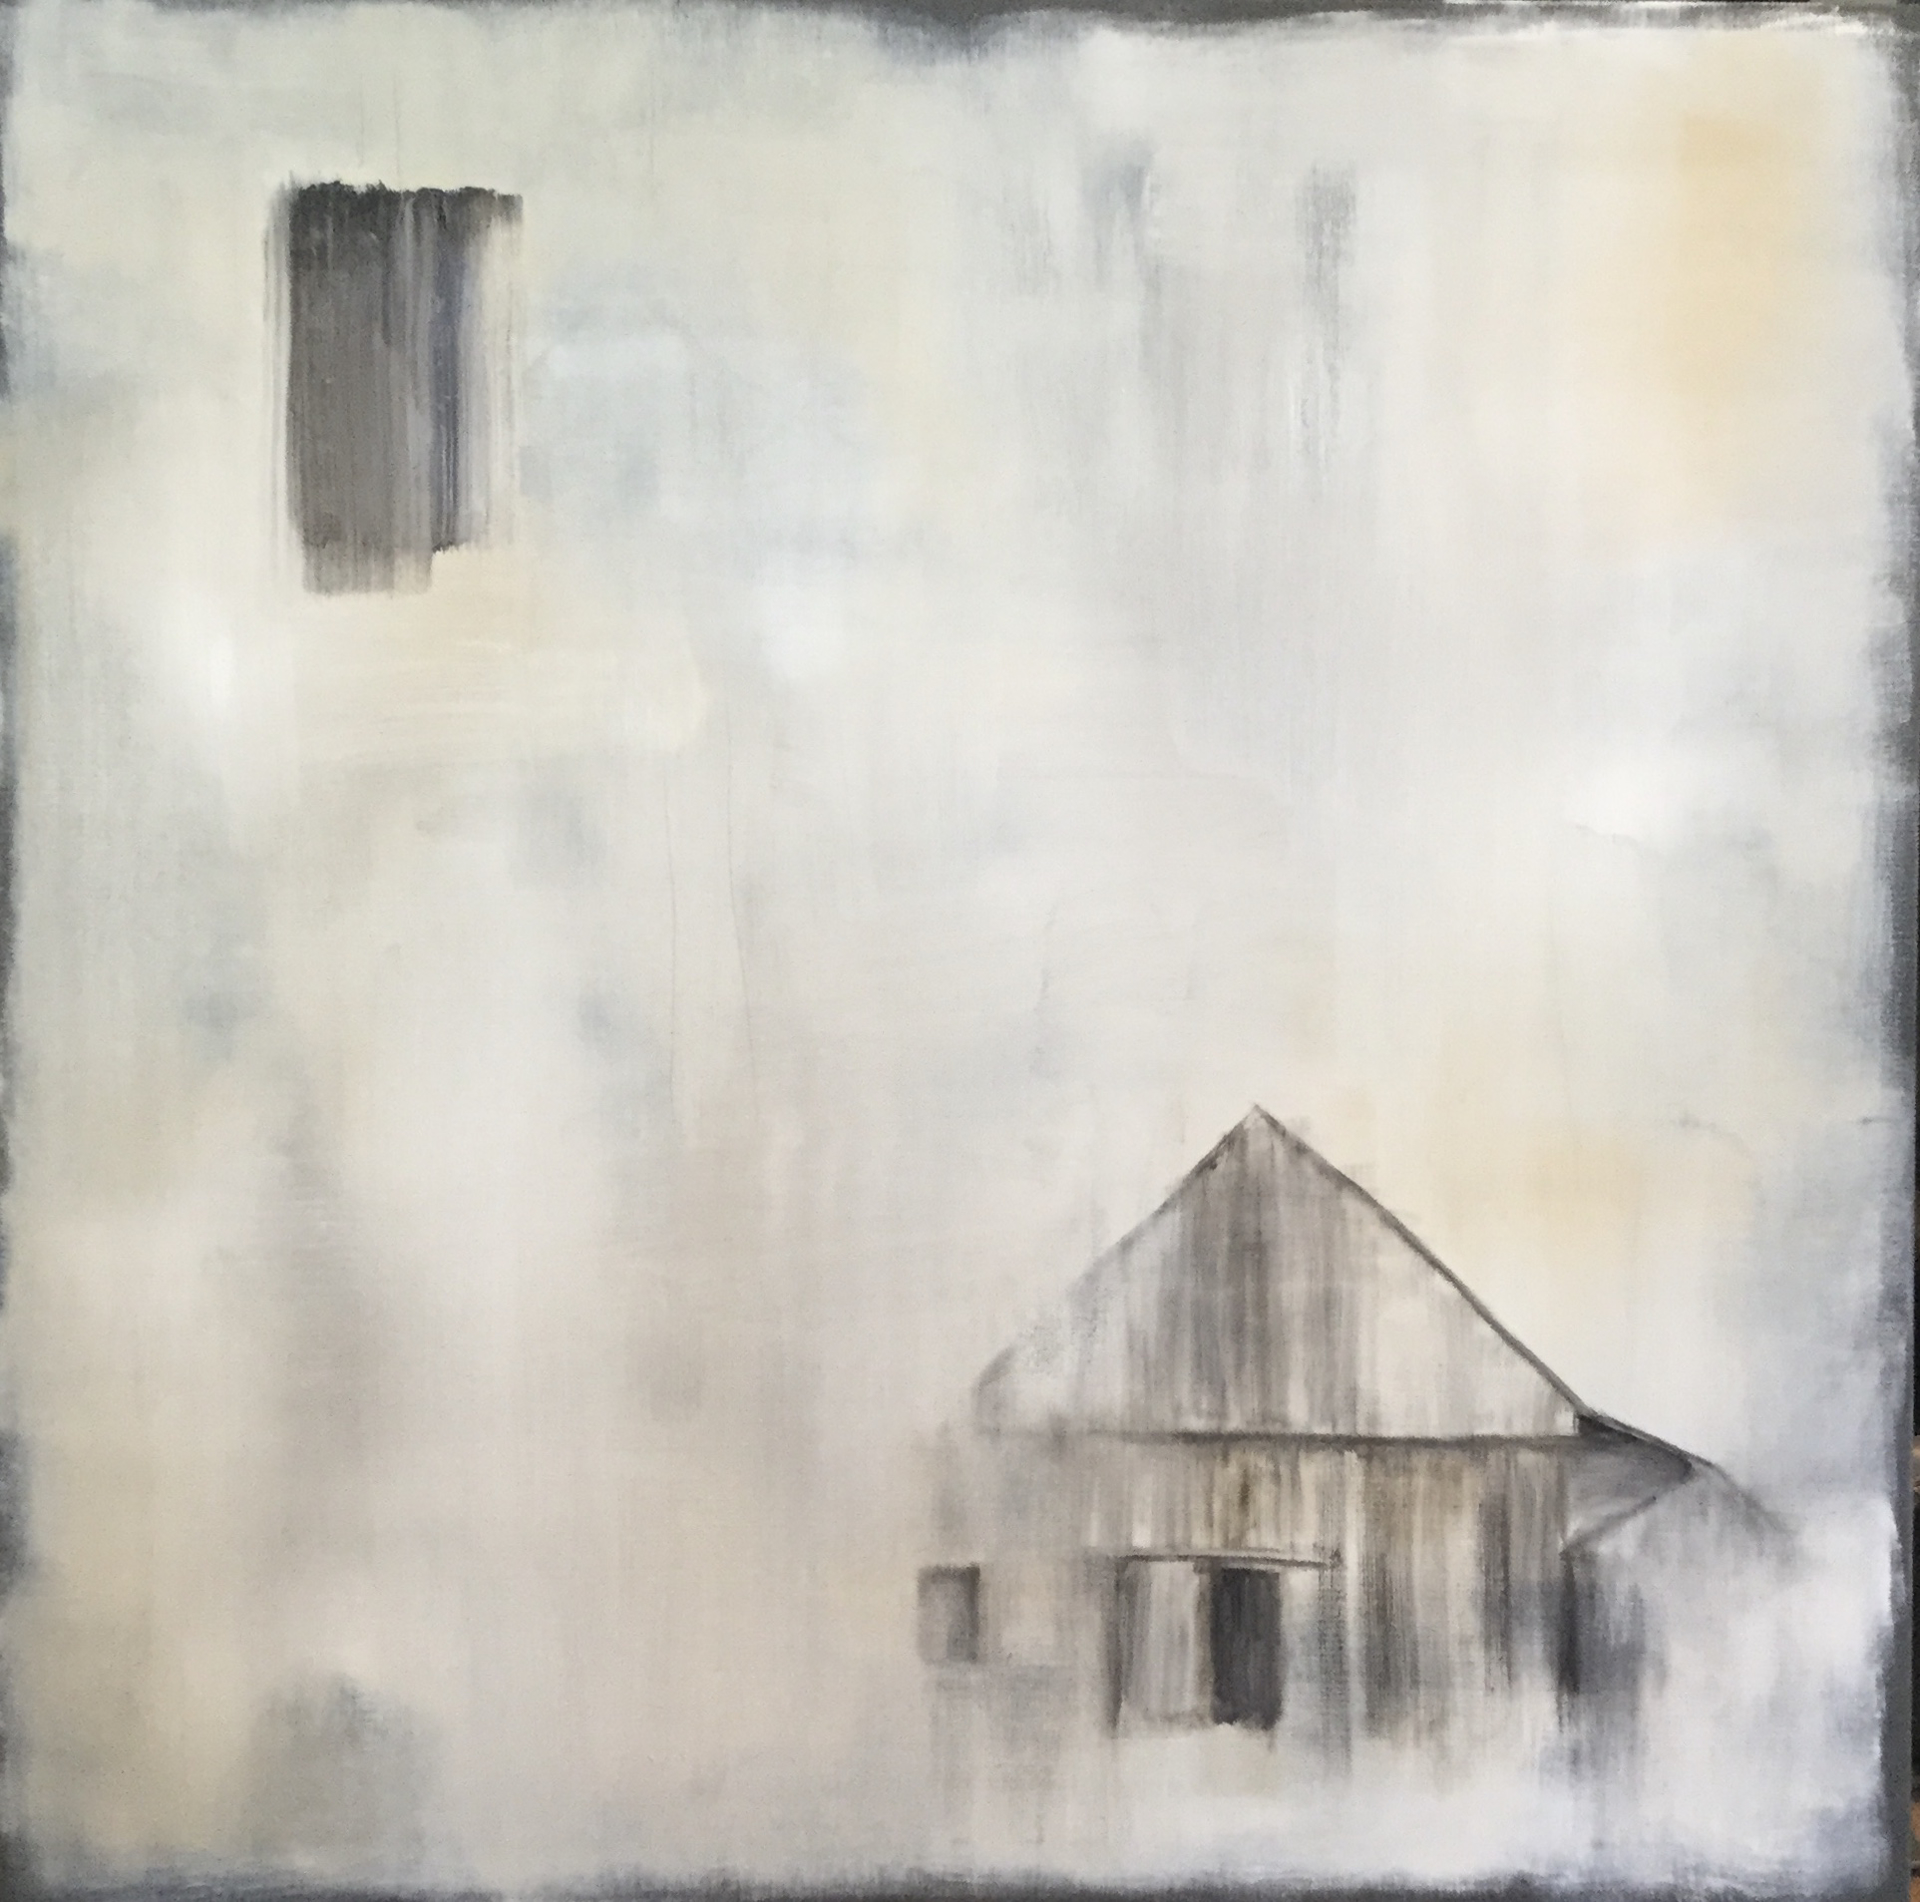 Faded Memories by Sharon Brown